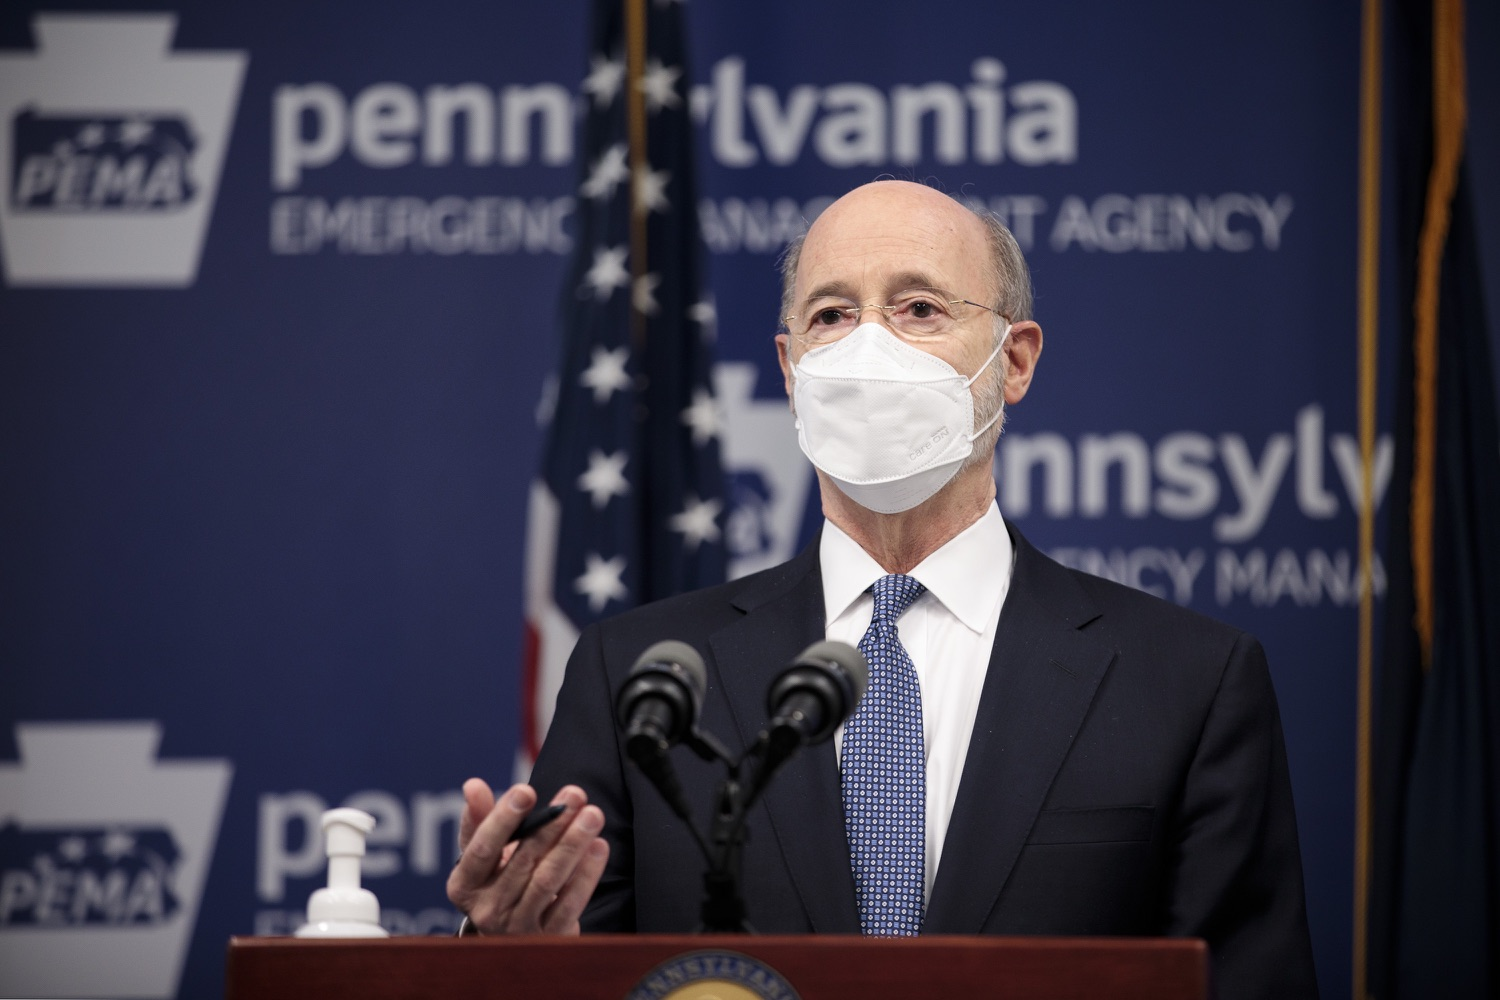 "<a href=""https://filesource.wostreaming.net/commonwealthofpa/photo/18551_gov_charterReform_dz_14.jpg"" target=""_blank"">⇣ Download Photo<br></a>Pennsylvania Governor Tom Wolf speaks to the press.  The urgent need to hold charter schools and cyber charter schools accountable has increased as enrollment and taxpayer costs have swelled during the COVID-19 pandemic. Governor Tom Wolf today unveiled a common sense and fair bipartisan plan that protects students, parents and taxpayers. The plan holds low-performing charter schools accountable to improve the quality of education, protects taxpayers by reining in skyrocketing charter school costs and increases the transparency of for-profit companies that run many charter schools. Harrisburg, PA  February 26, 2021"